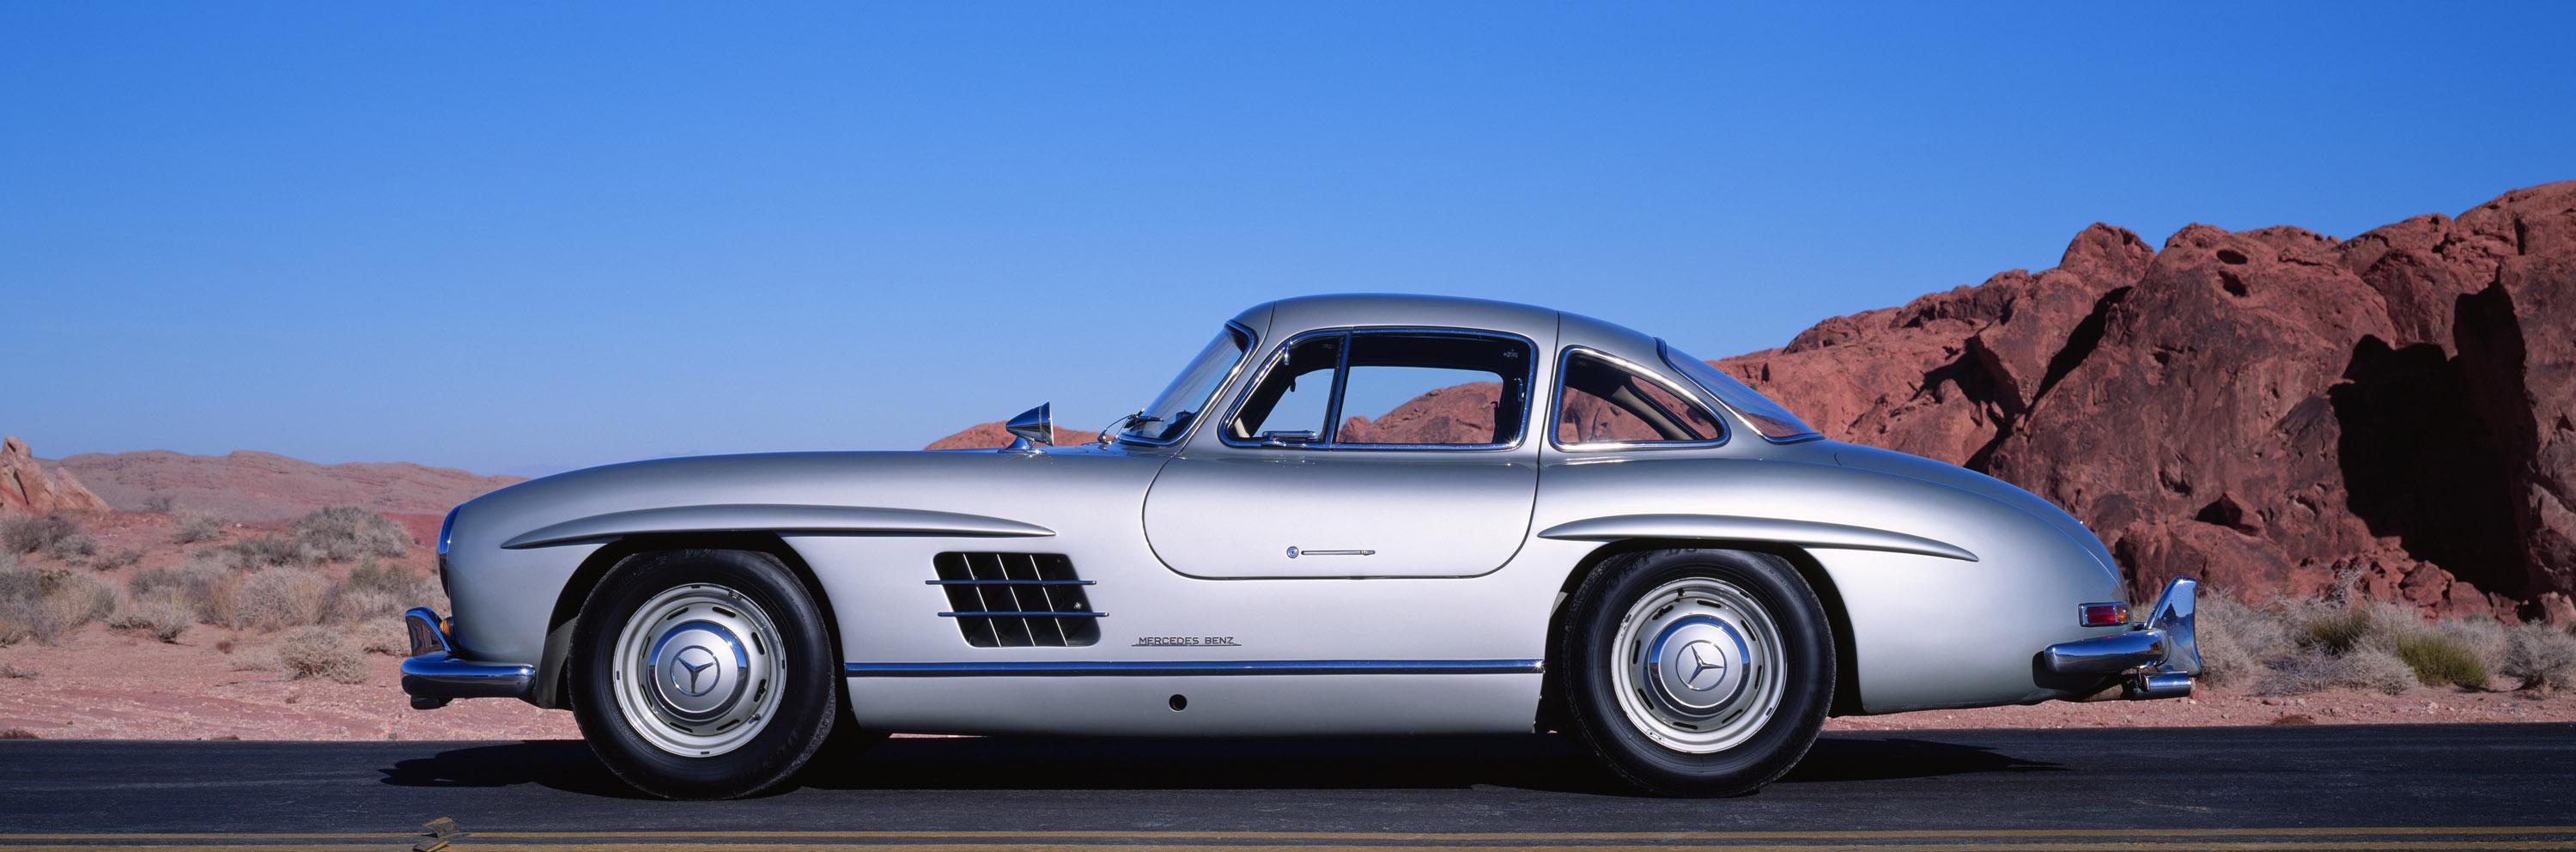 1954 mercedes benz 300 sl picture 94590 for 1954 mercedes benz 300sl